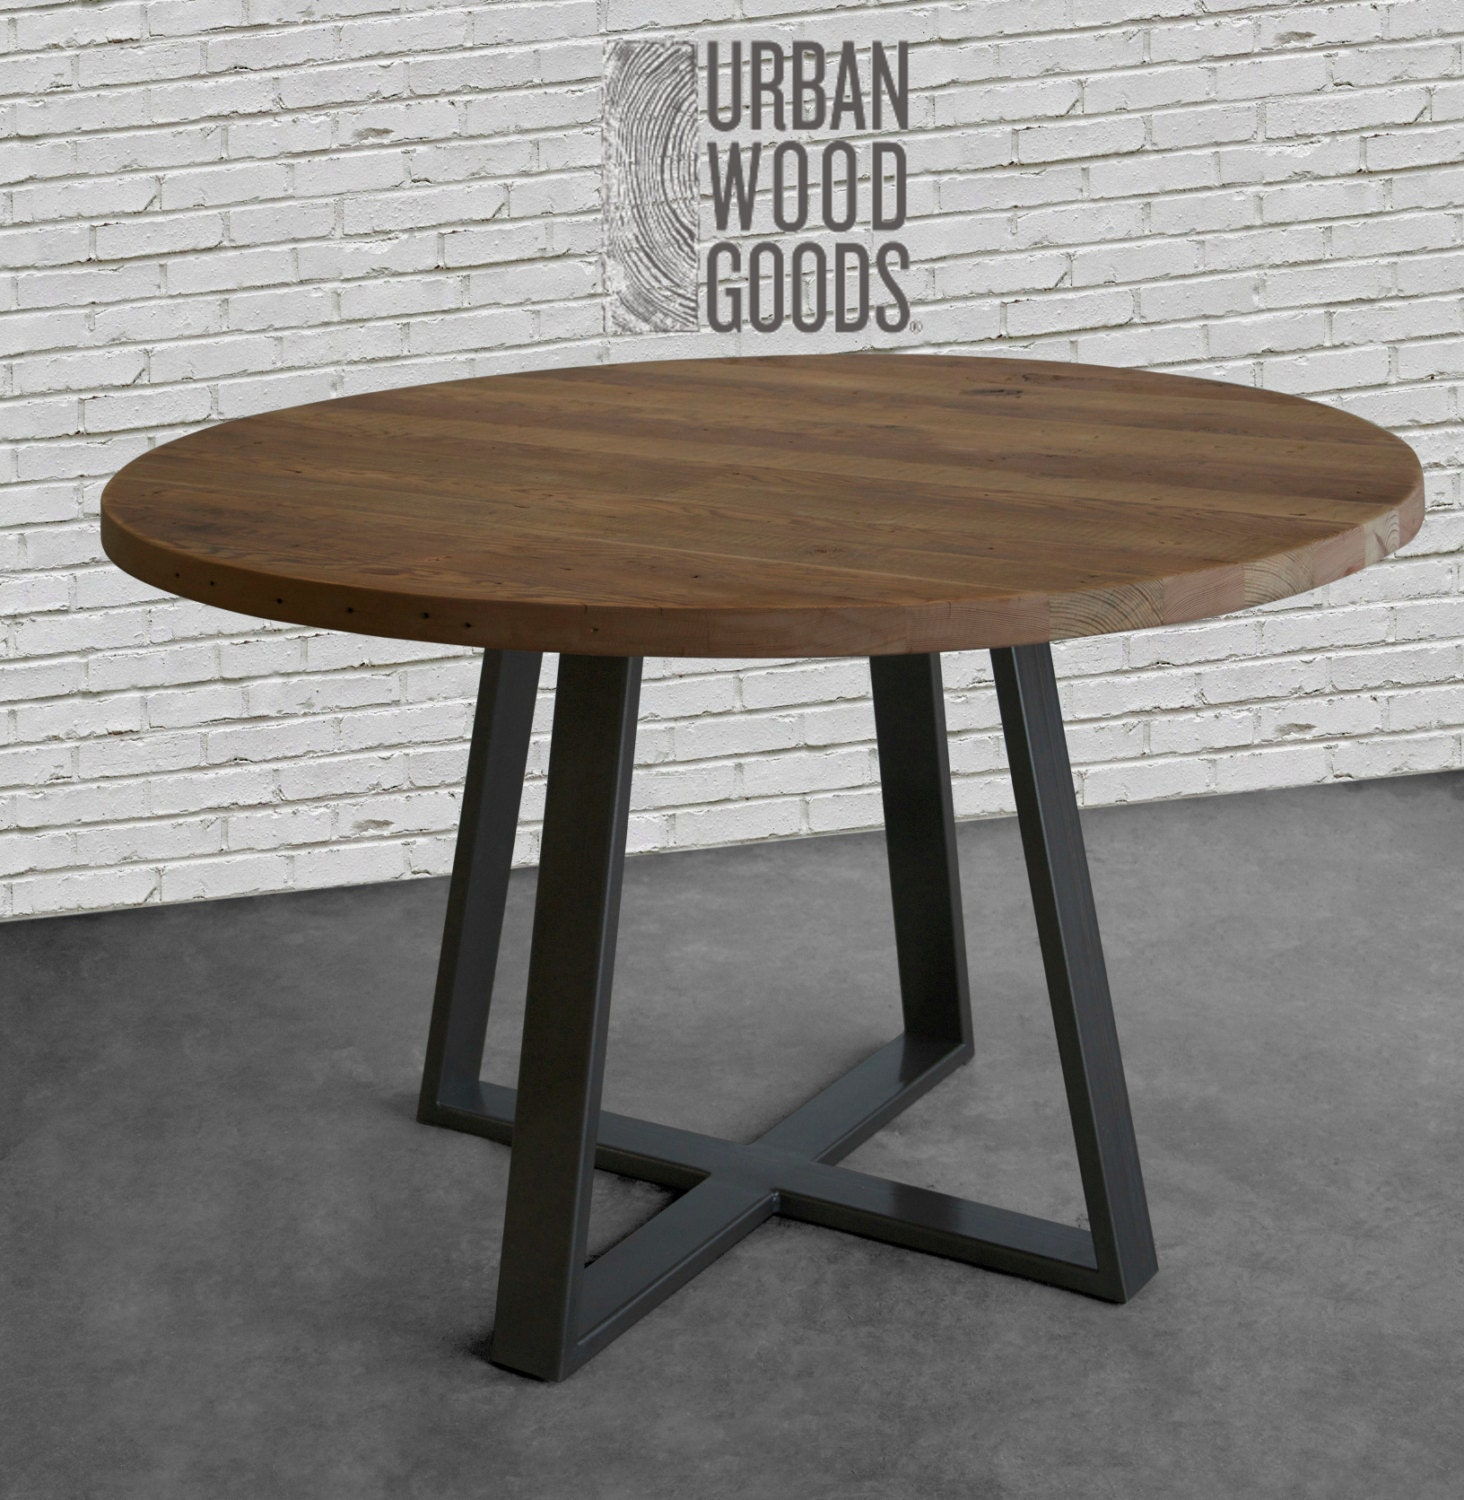 Etsy Round Coffee Tables: Round Dining Table In Reclaimed Wood And Steel Legs In Your